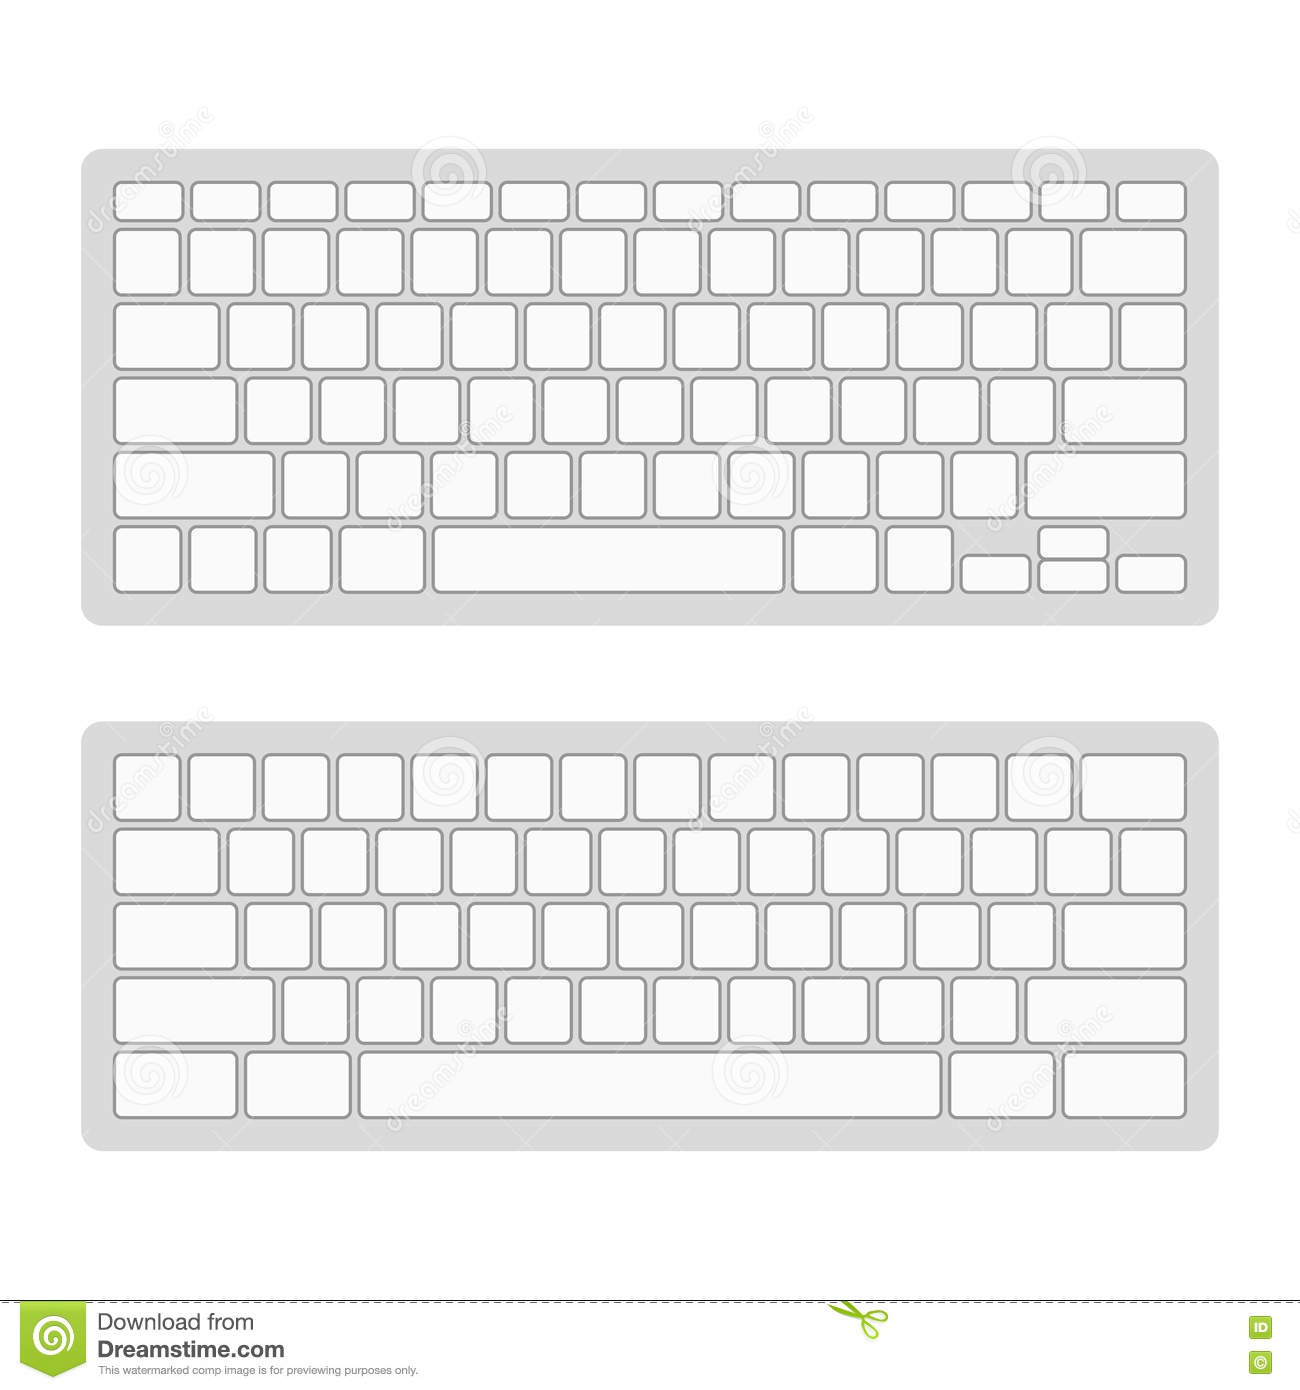 Blank computer keyboard clipart vector library download Computer Keyboard Blank Template Set. Vector Stock Vector - Image ... vector library download